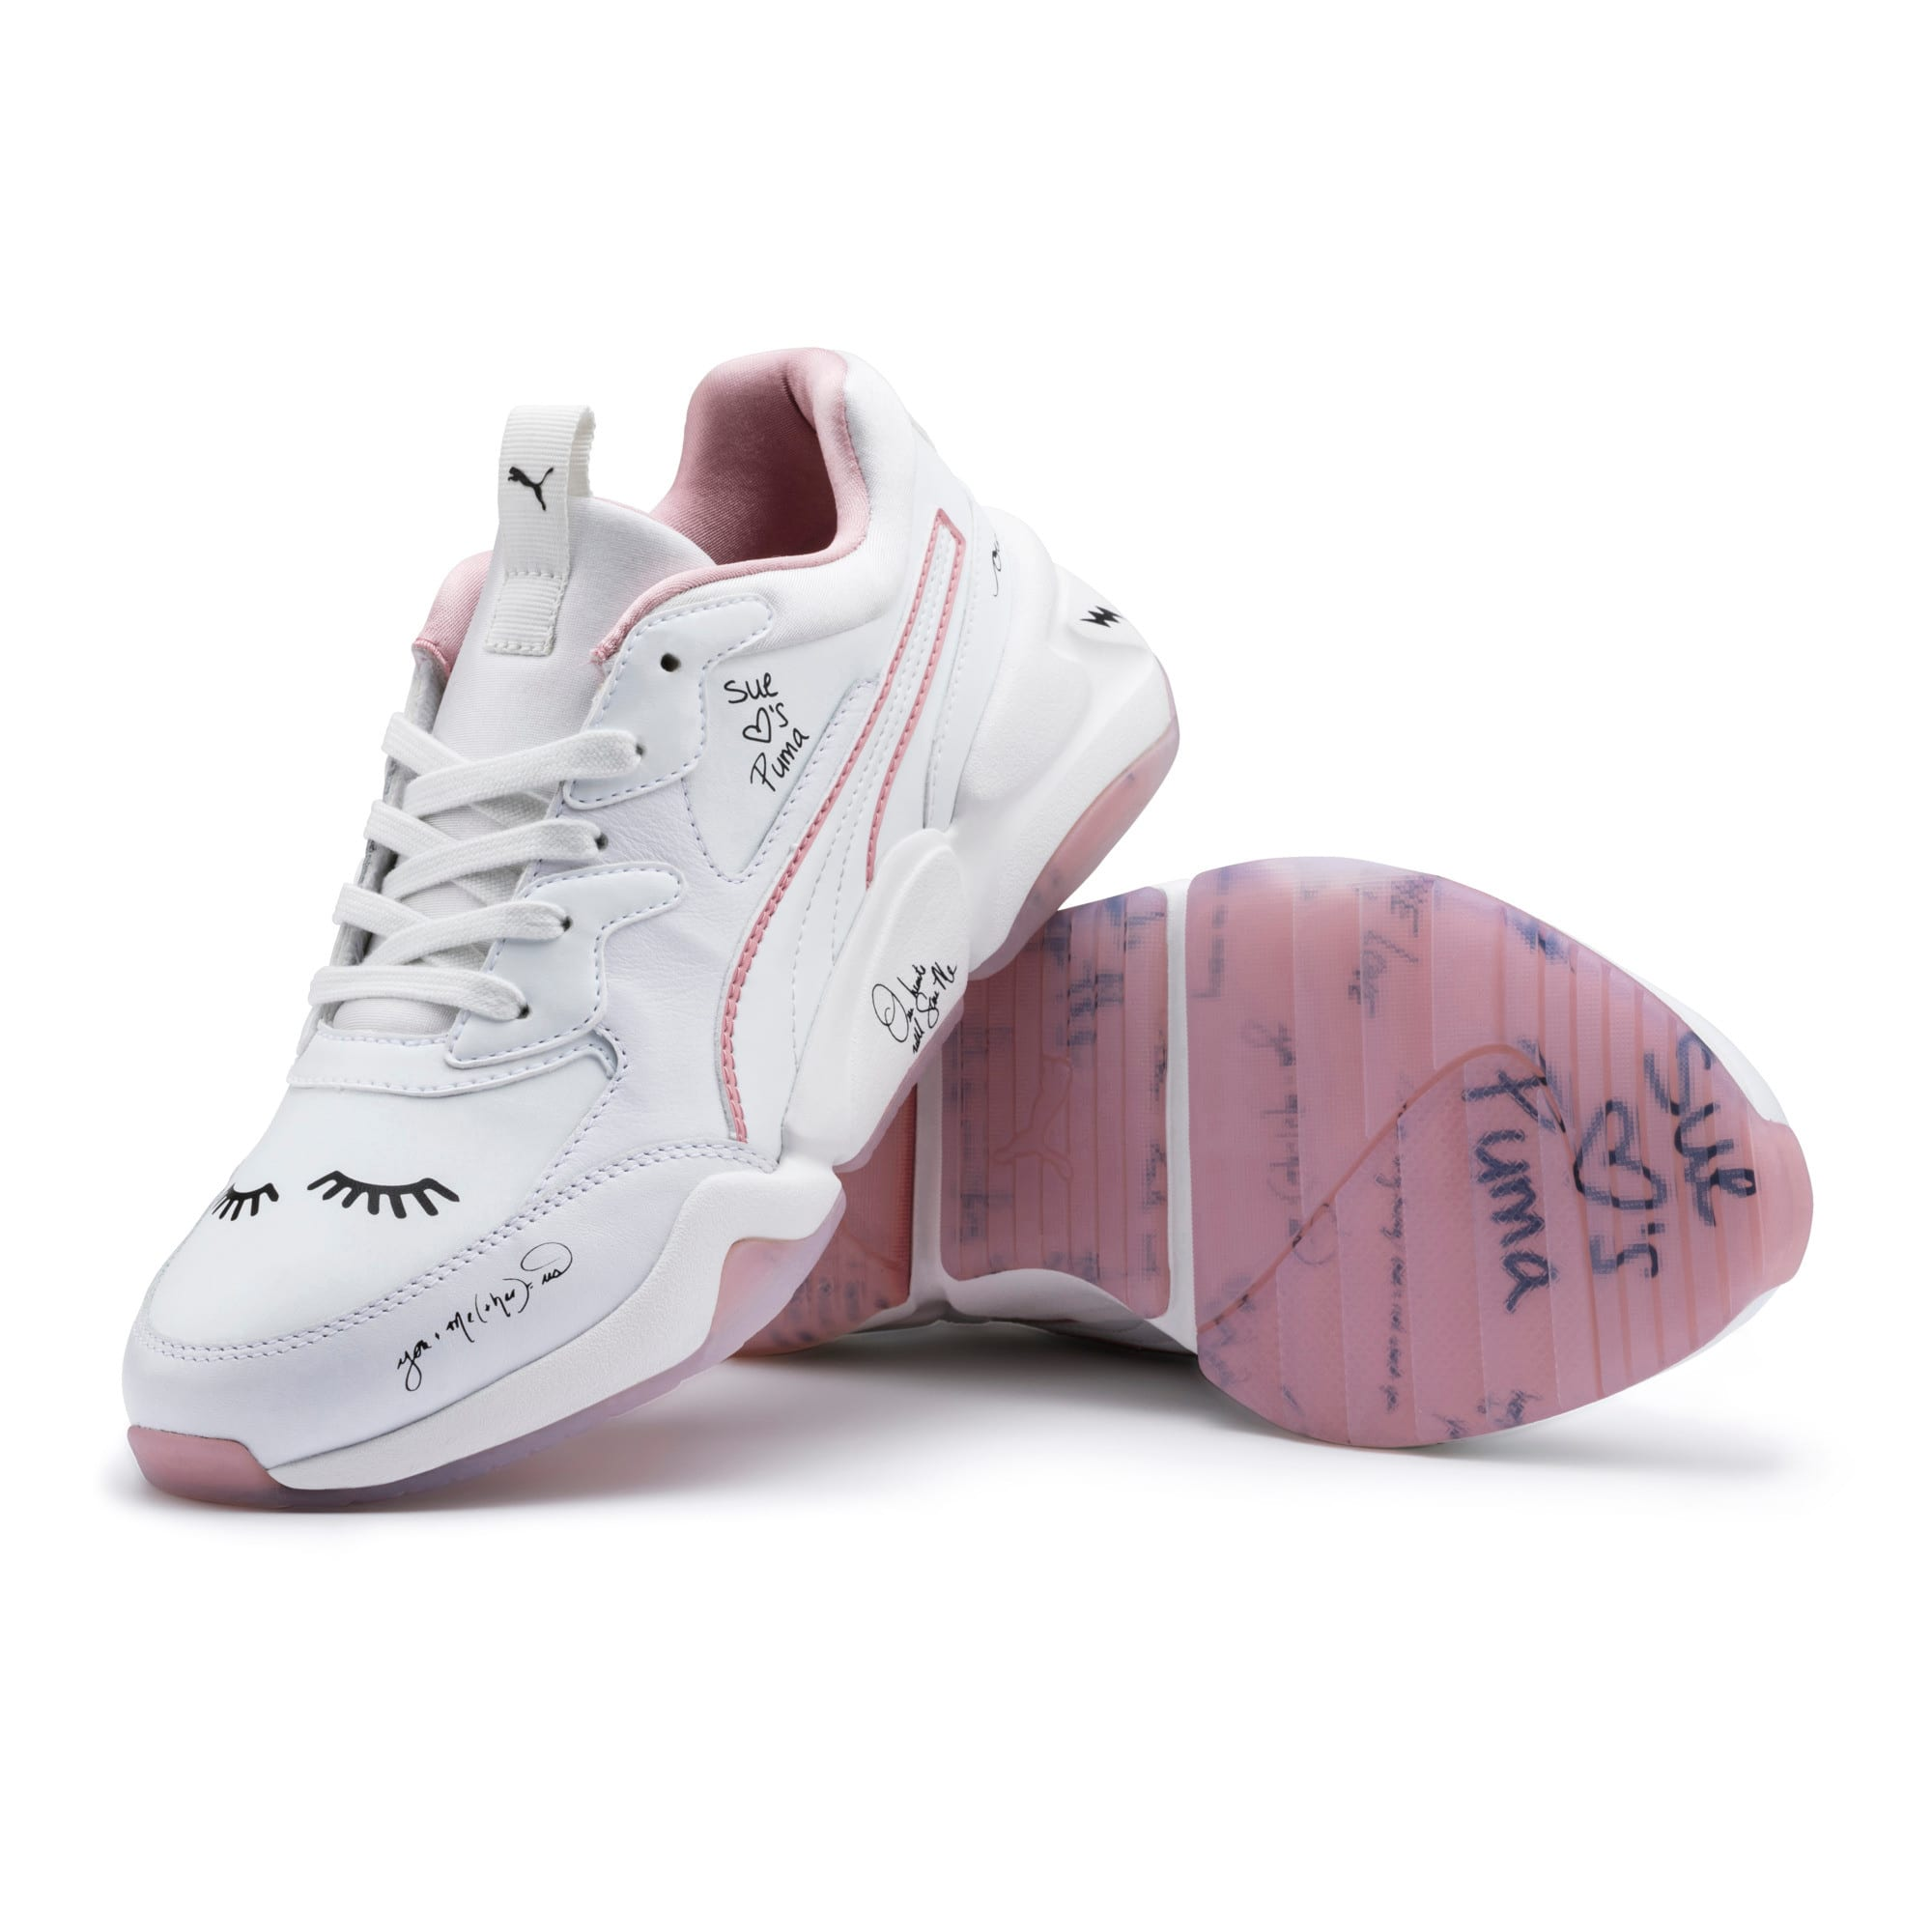 Thumbnail 10 of PUMA x SUE TSAI Nova Women's Trainers, Bright White-Bright White, medium